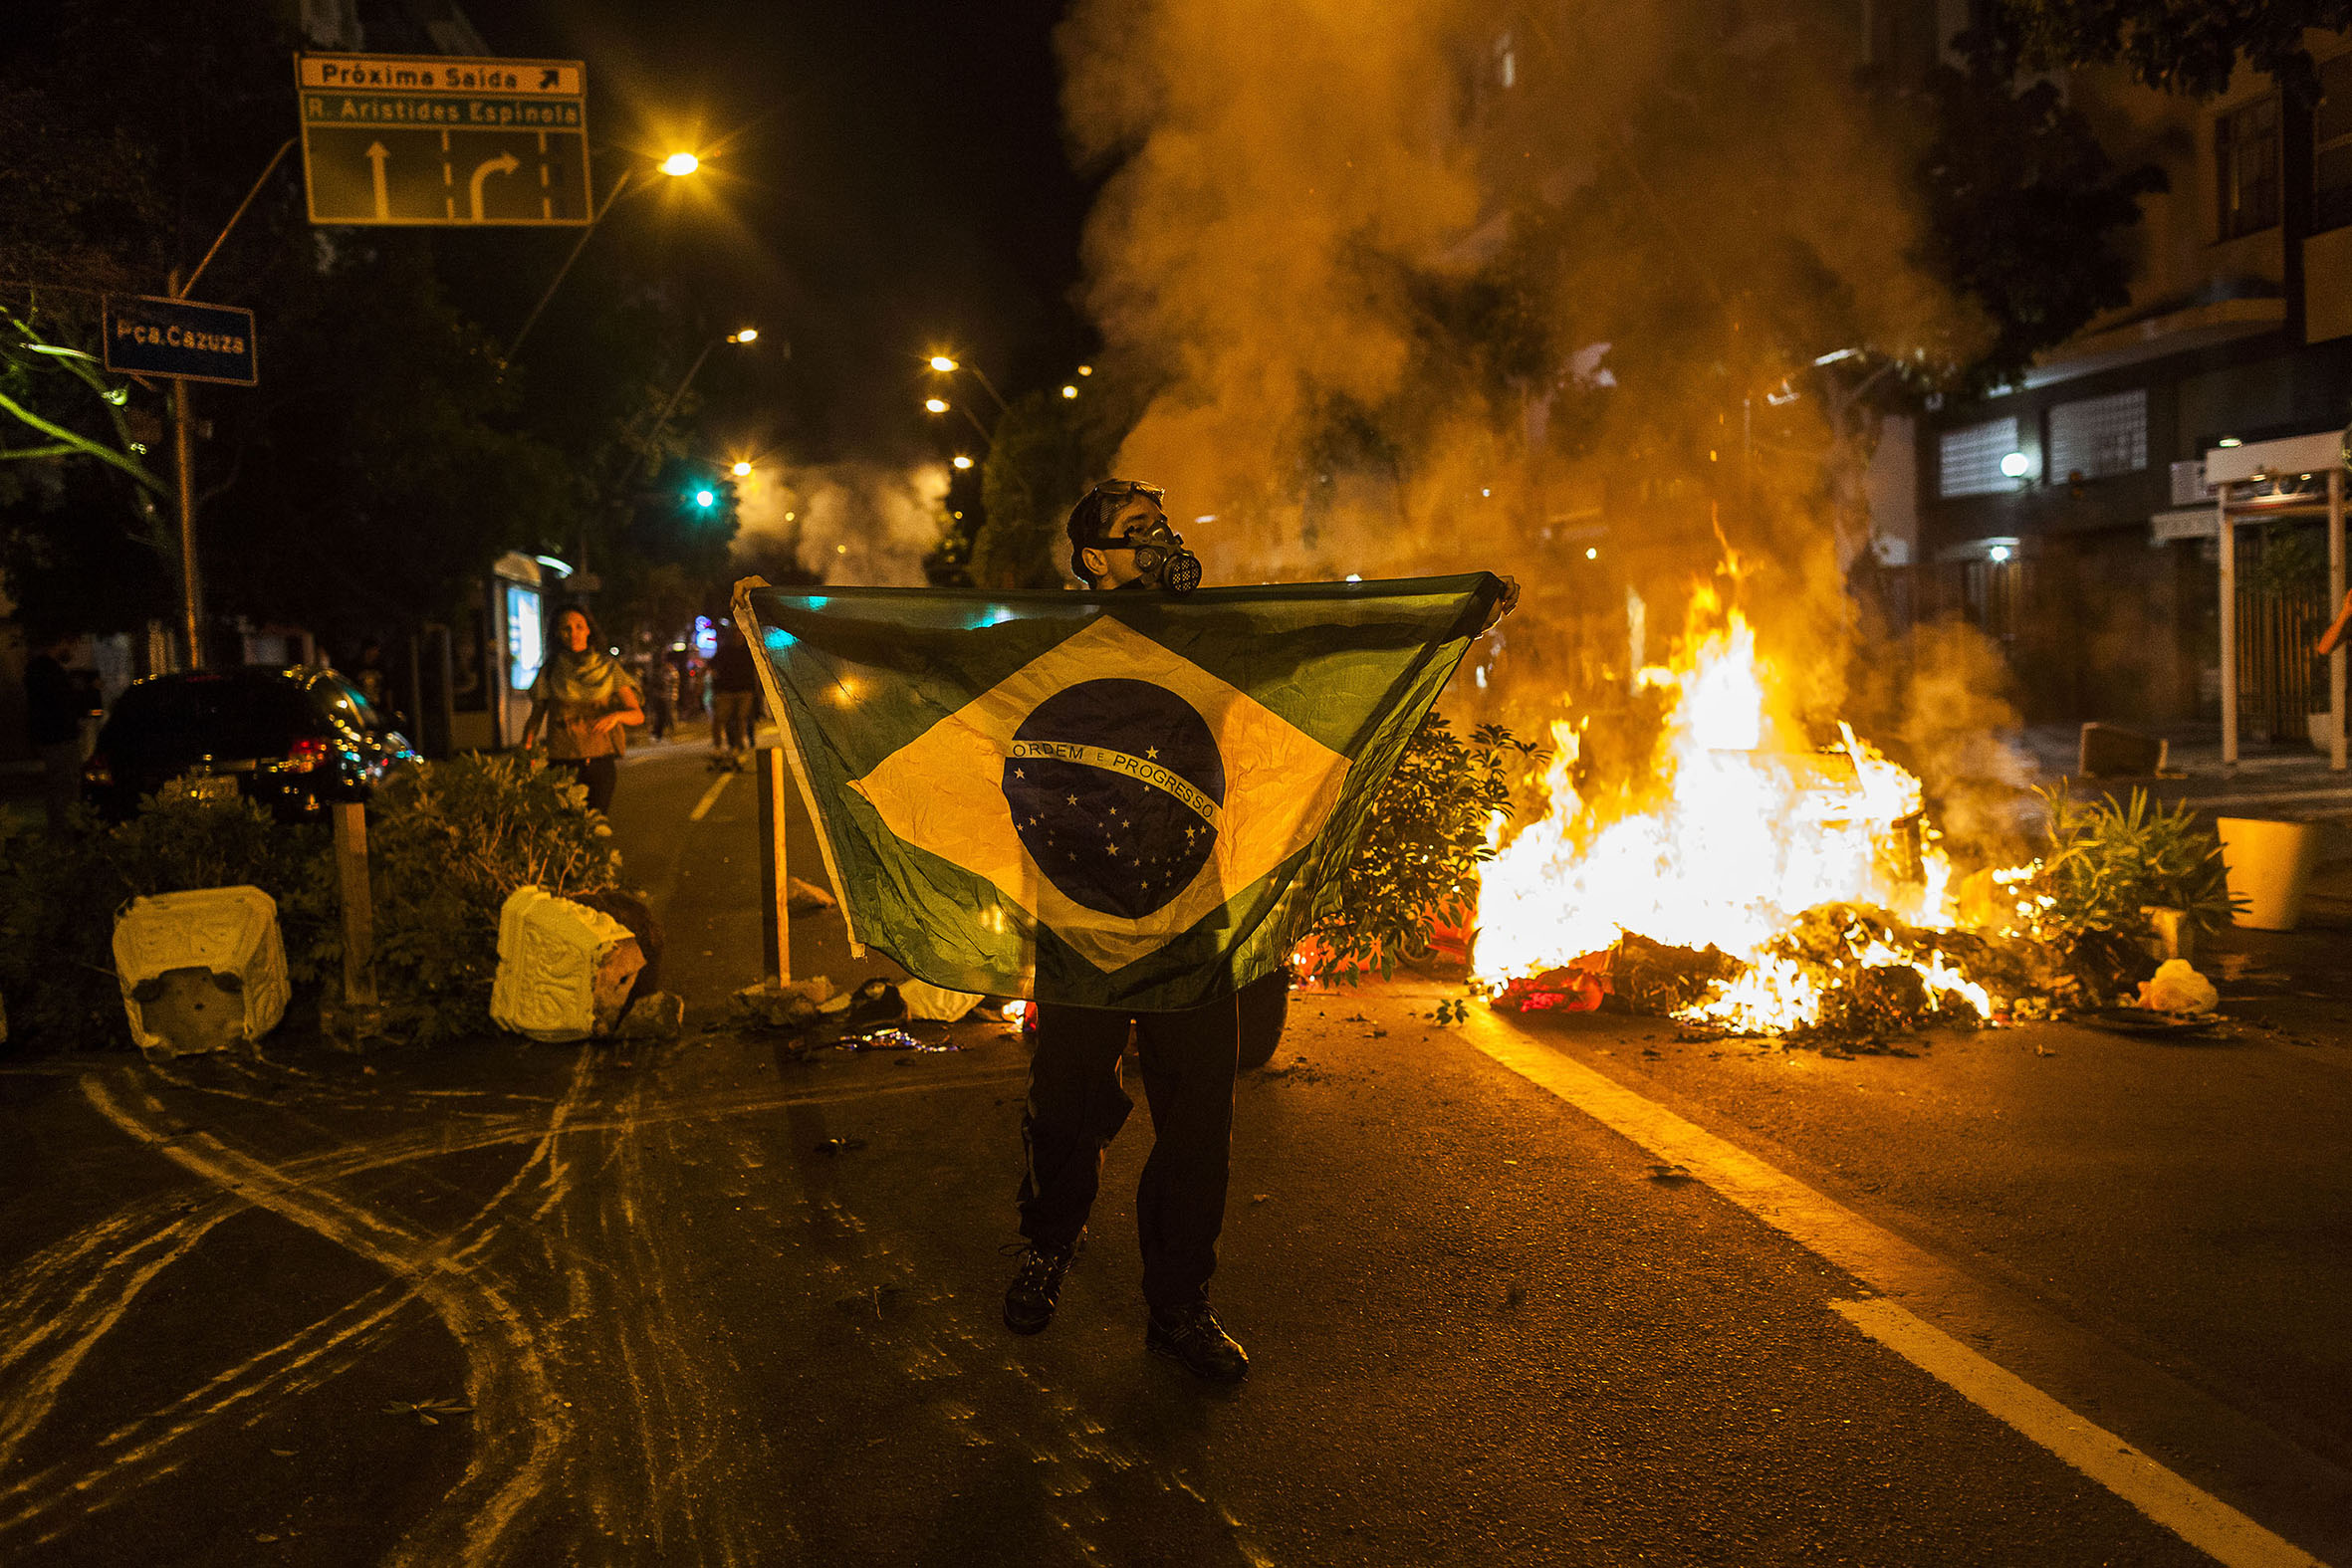 """I try to capture the essence of the people"": Brazilian photojournalist Ana Carolina Fernandes talks to Brazil Reports"